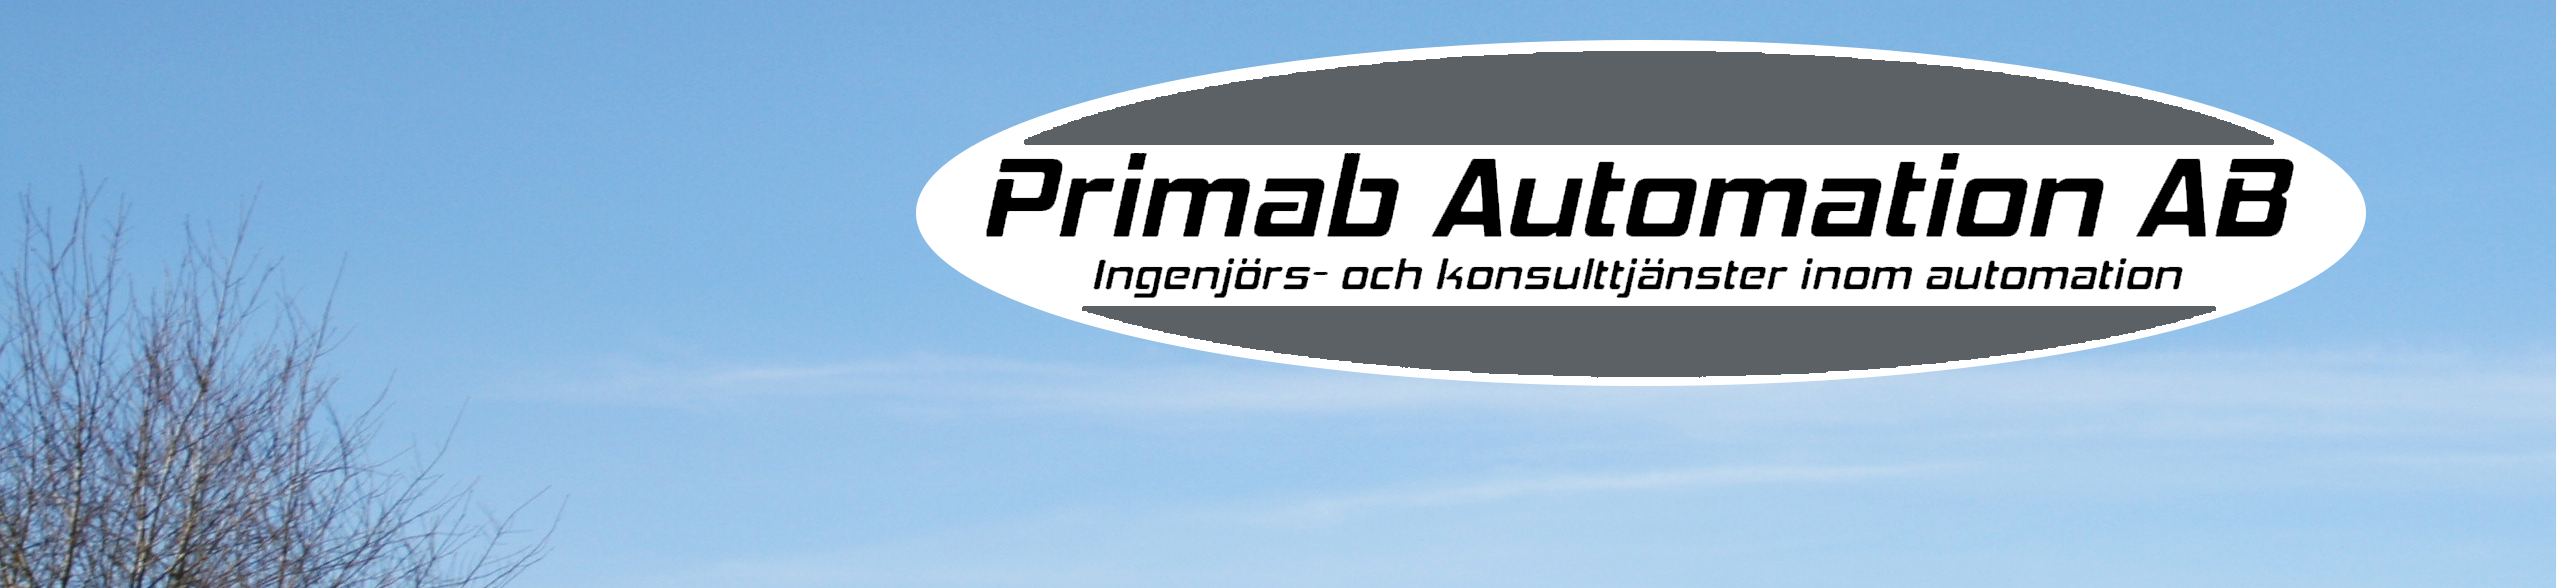 PRIMAB Automation AB